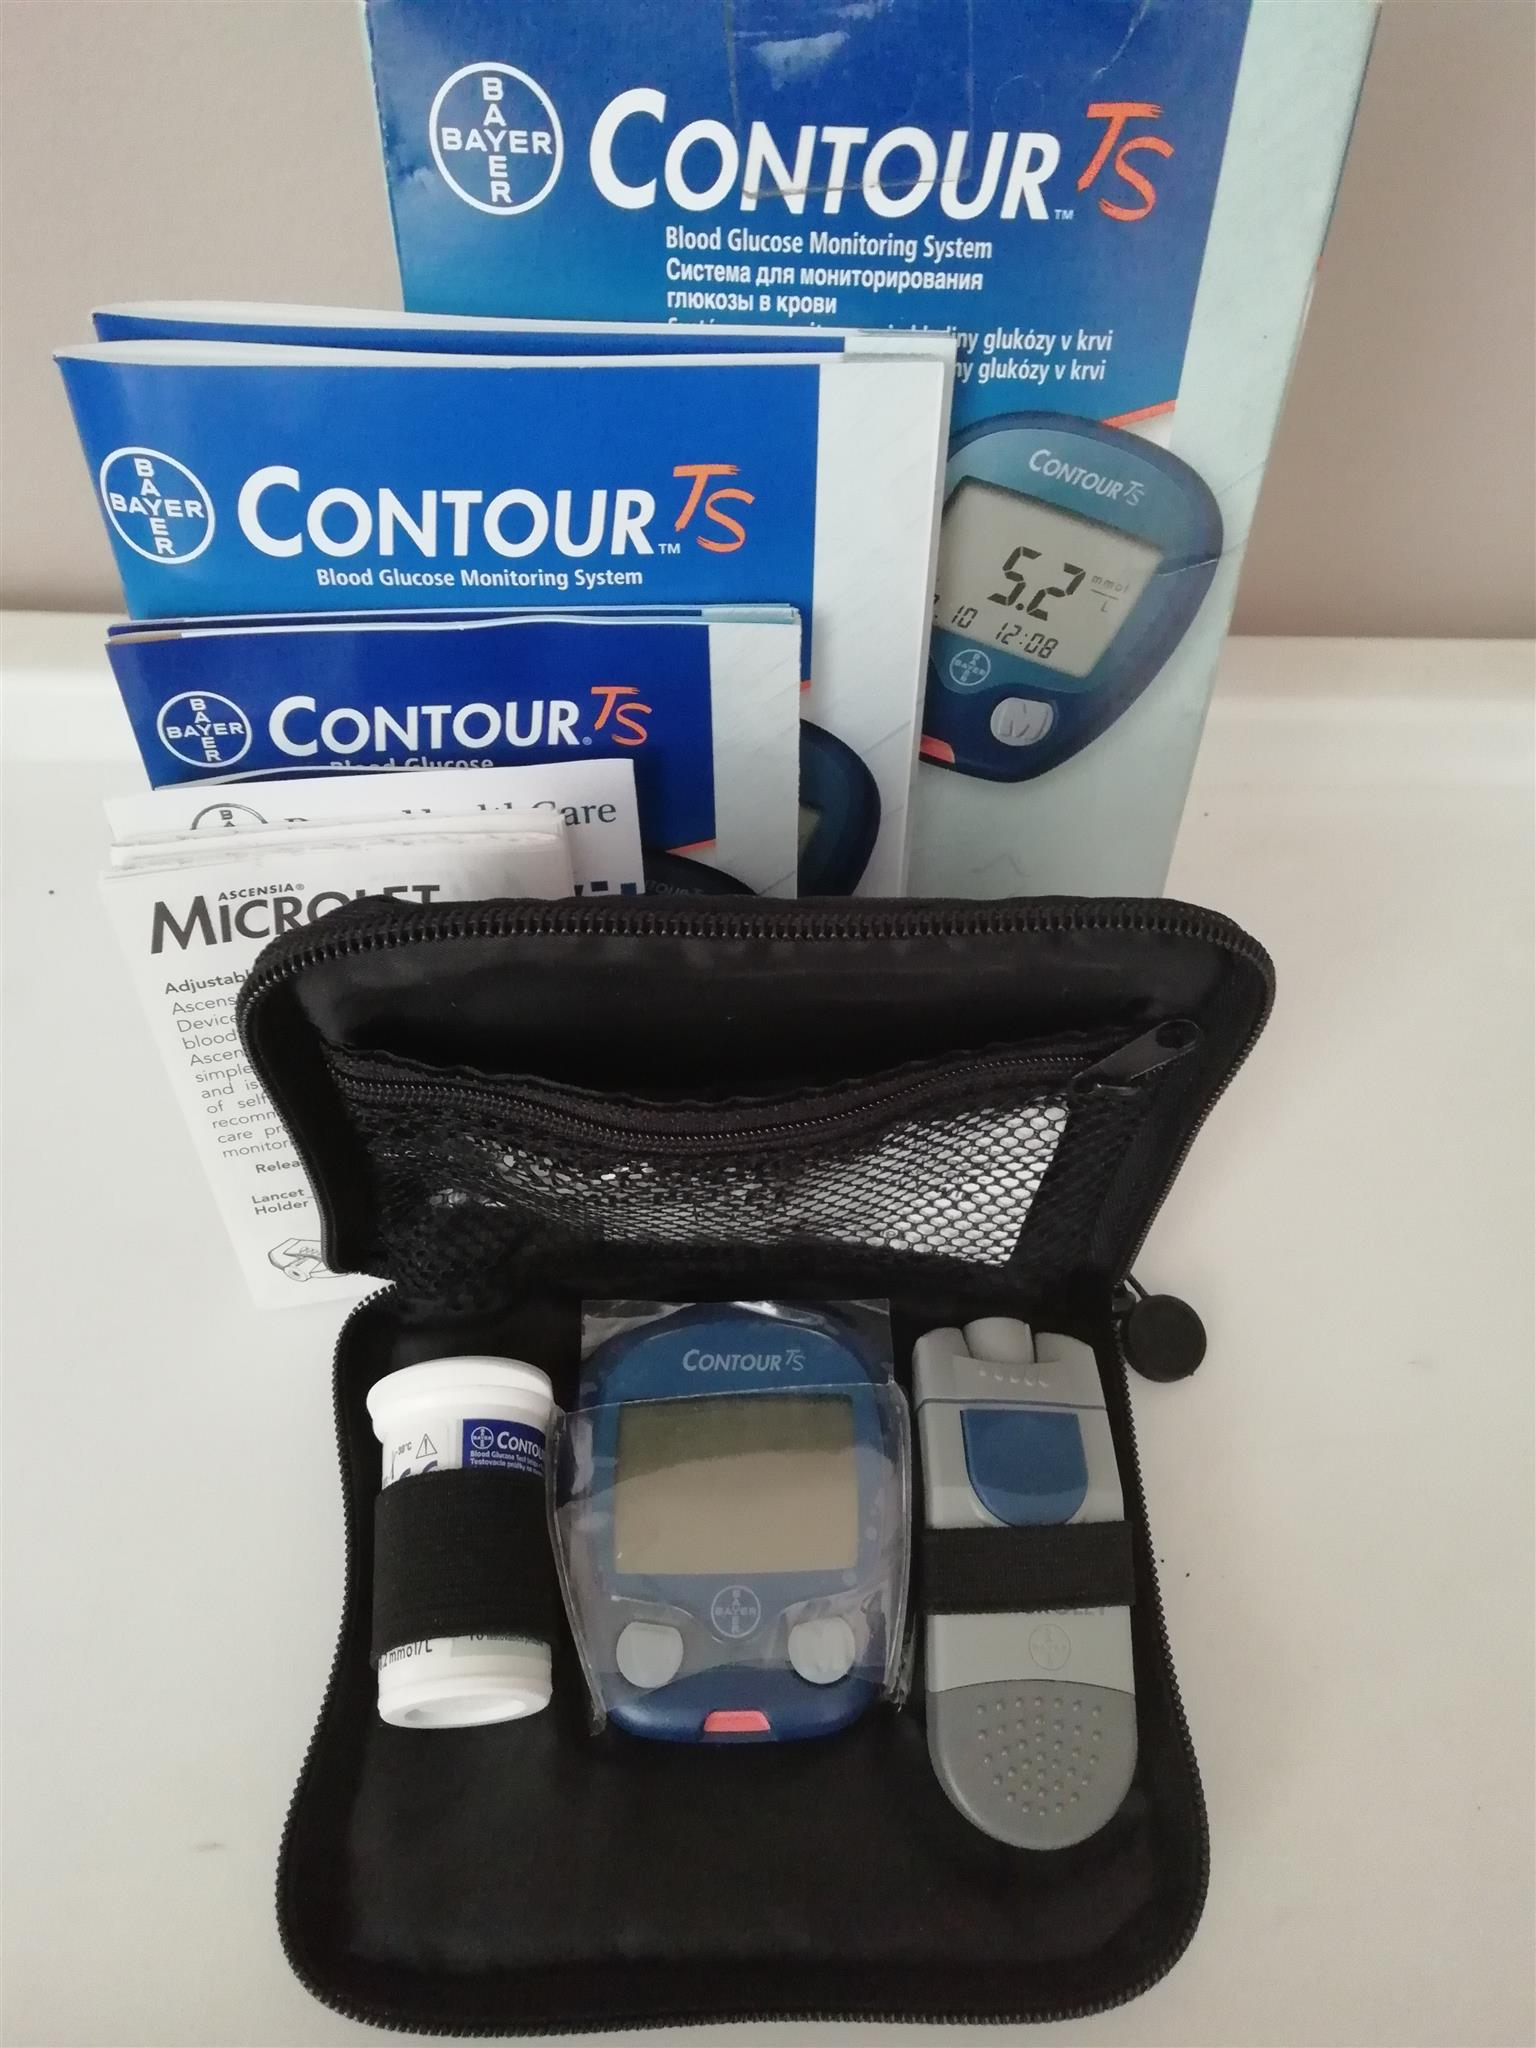 CareSens II and Contour TS blood glucose meters